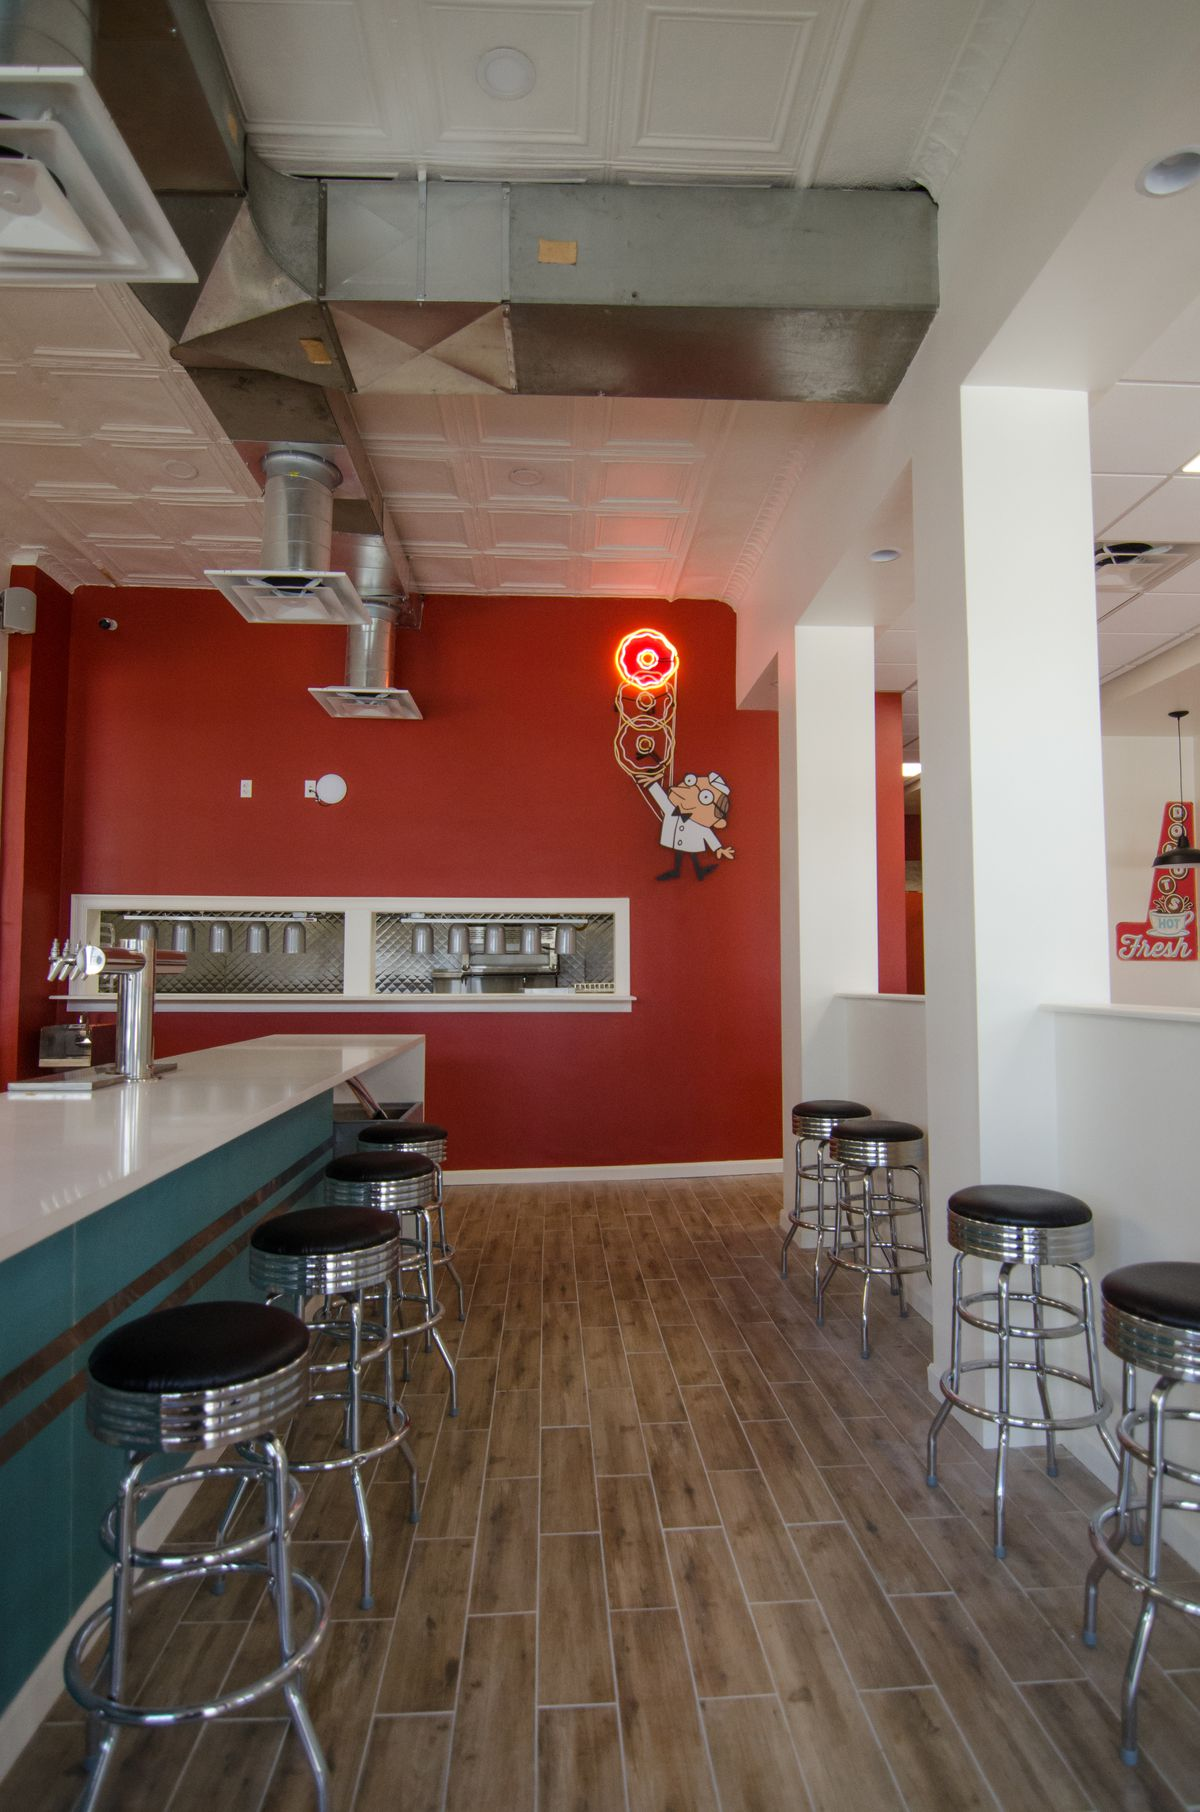 Interior view of a diner with stools lining a counter with teal accents. A bright red wall is in the back with neon signage depicting a diner cook holding a stack of doughnuts.